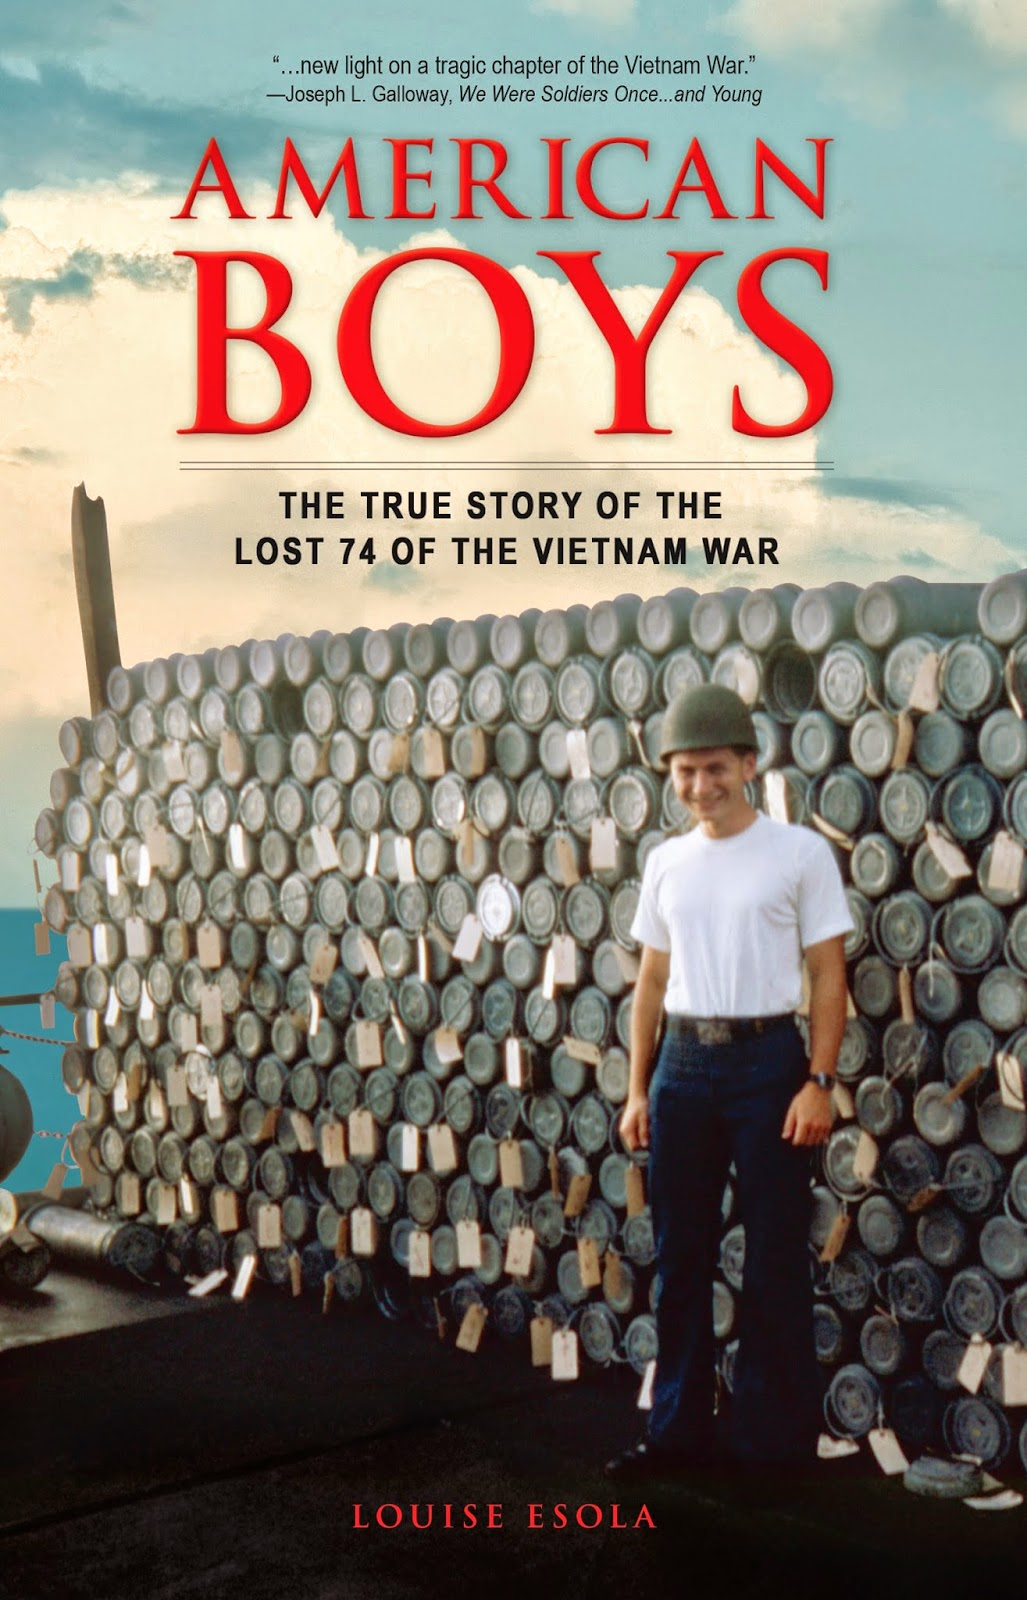 American Boys: The True Story of the Lost 74